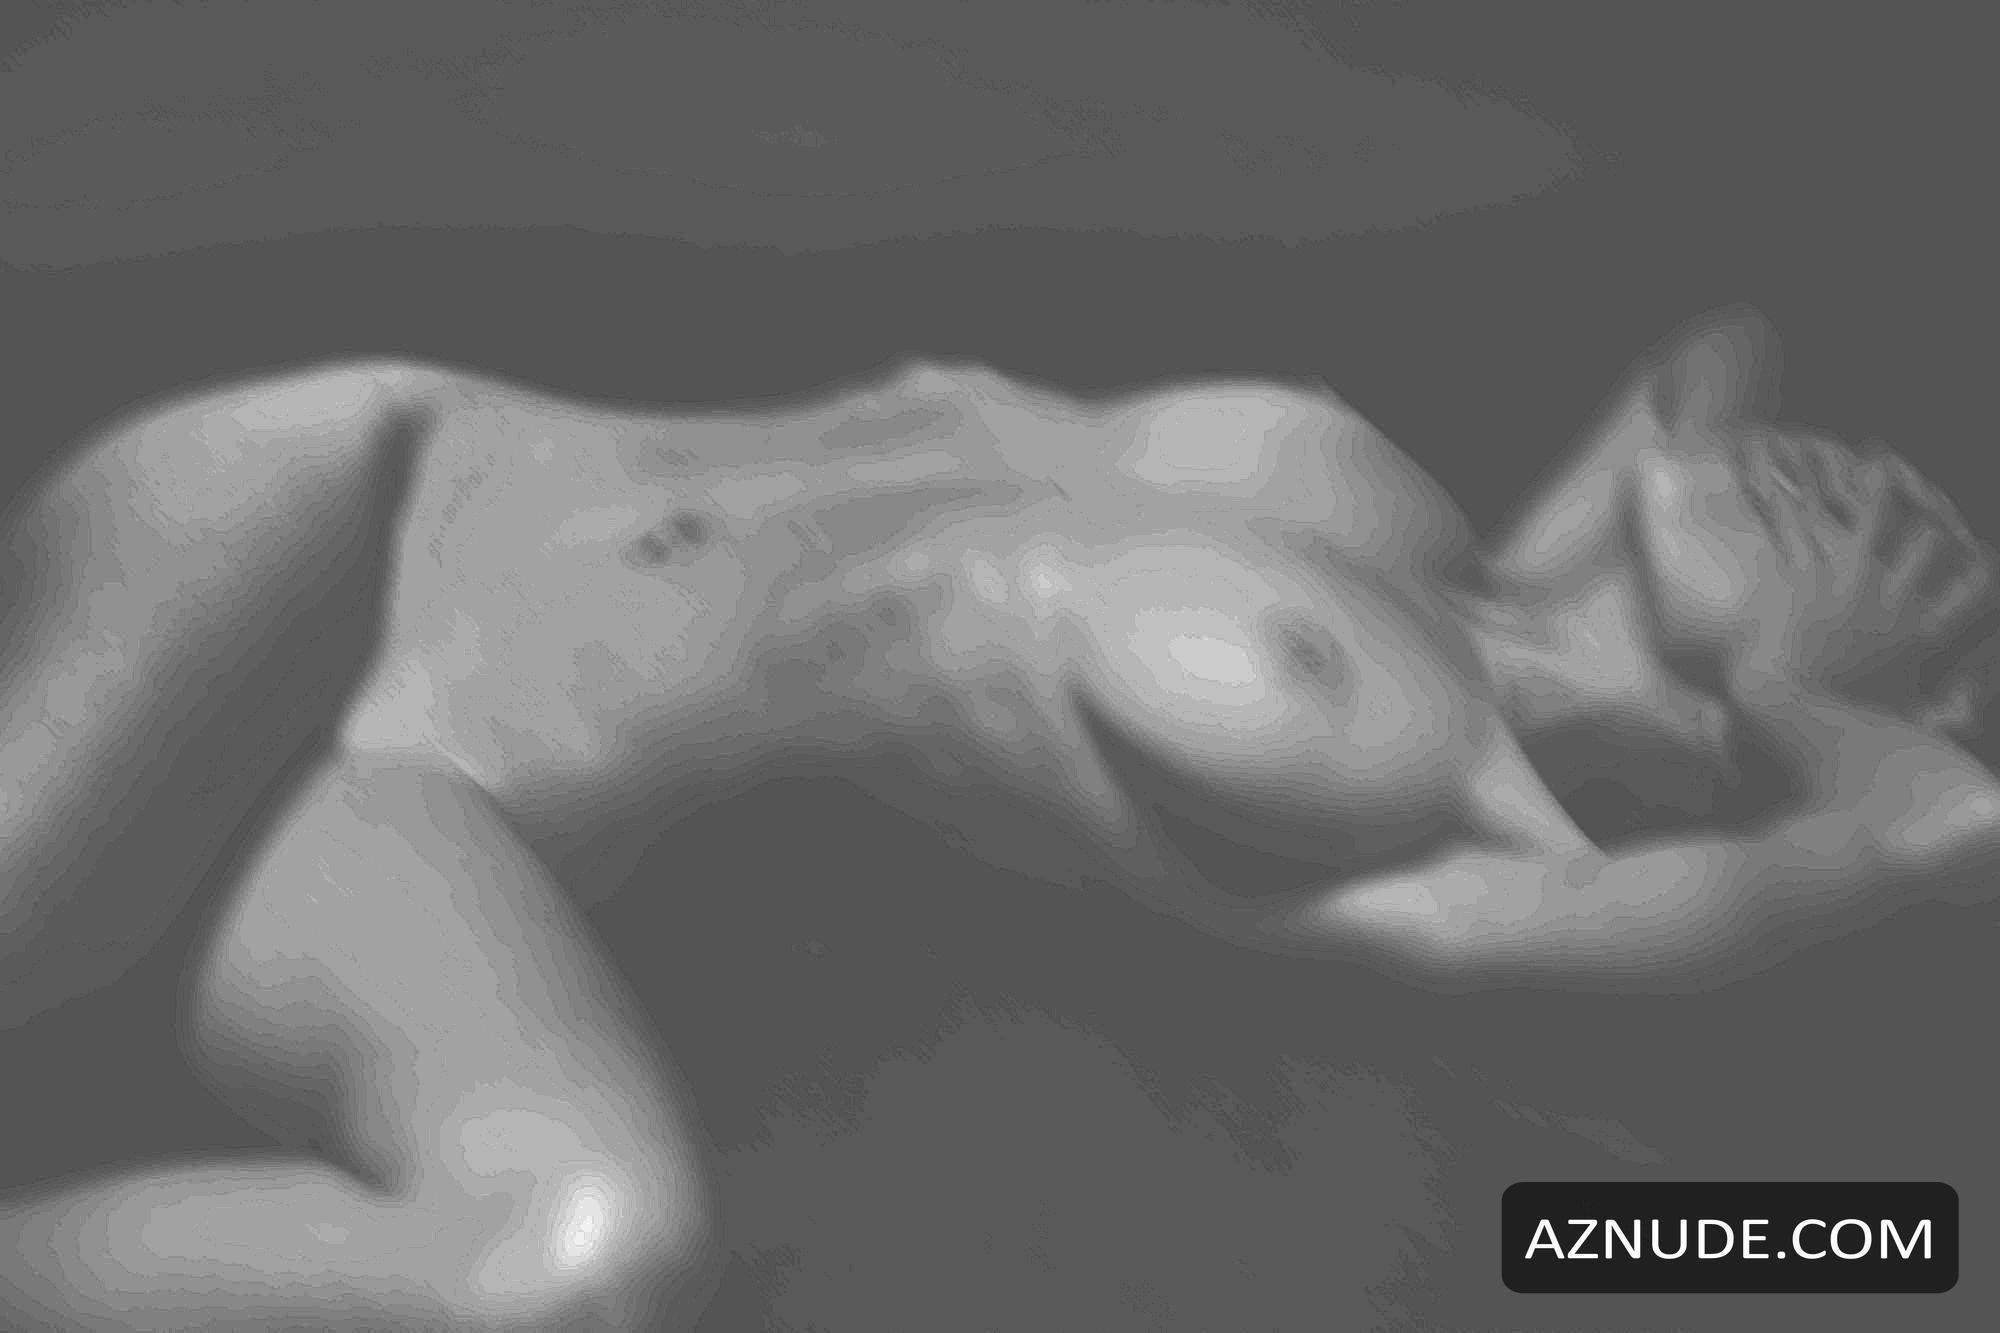 Browse Recent Images - Page 162 - Aznude-4321